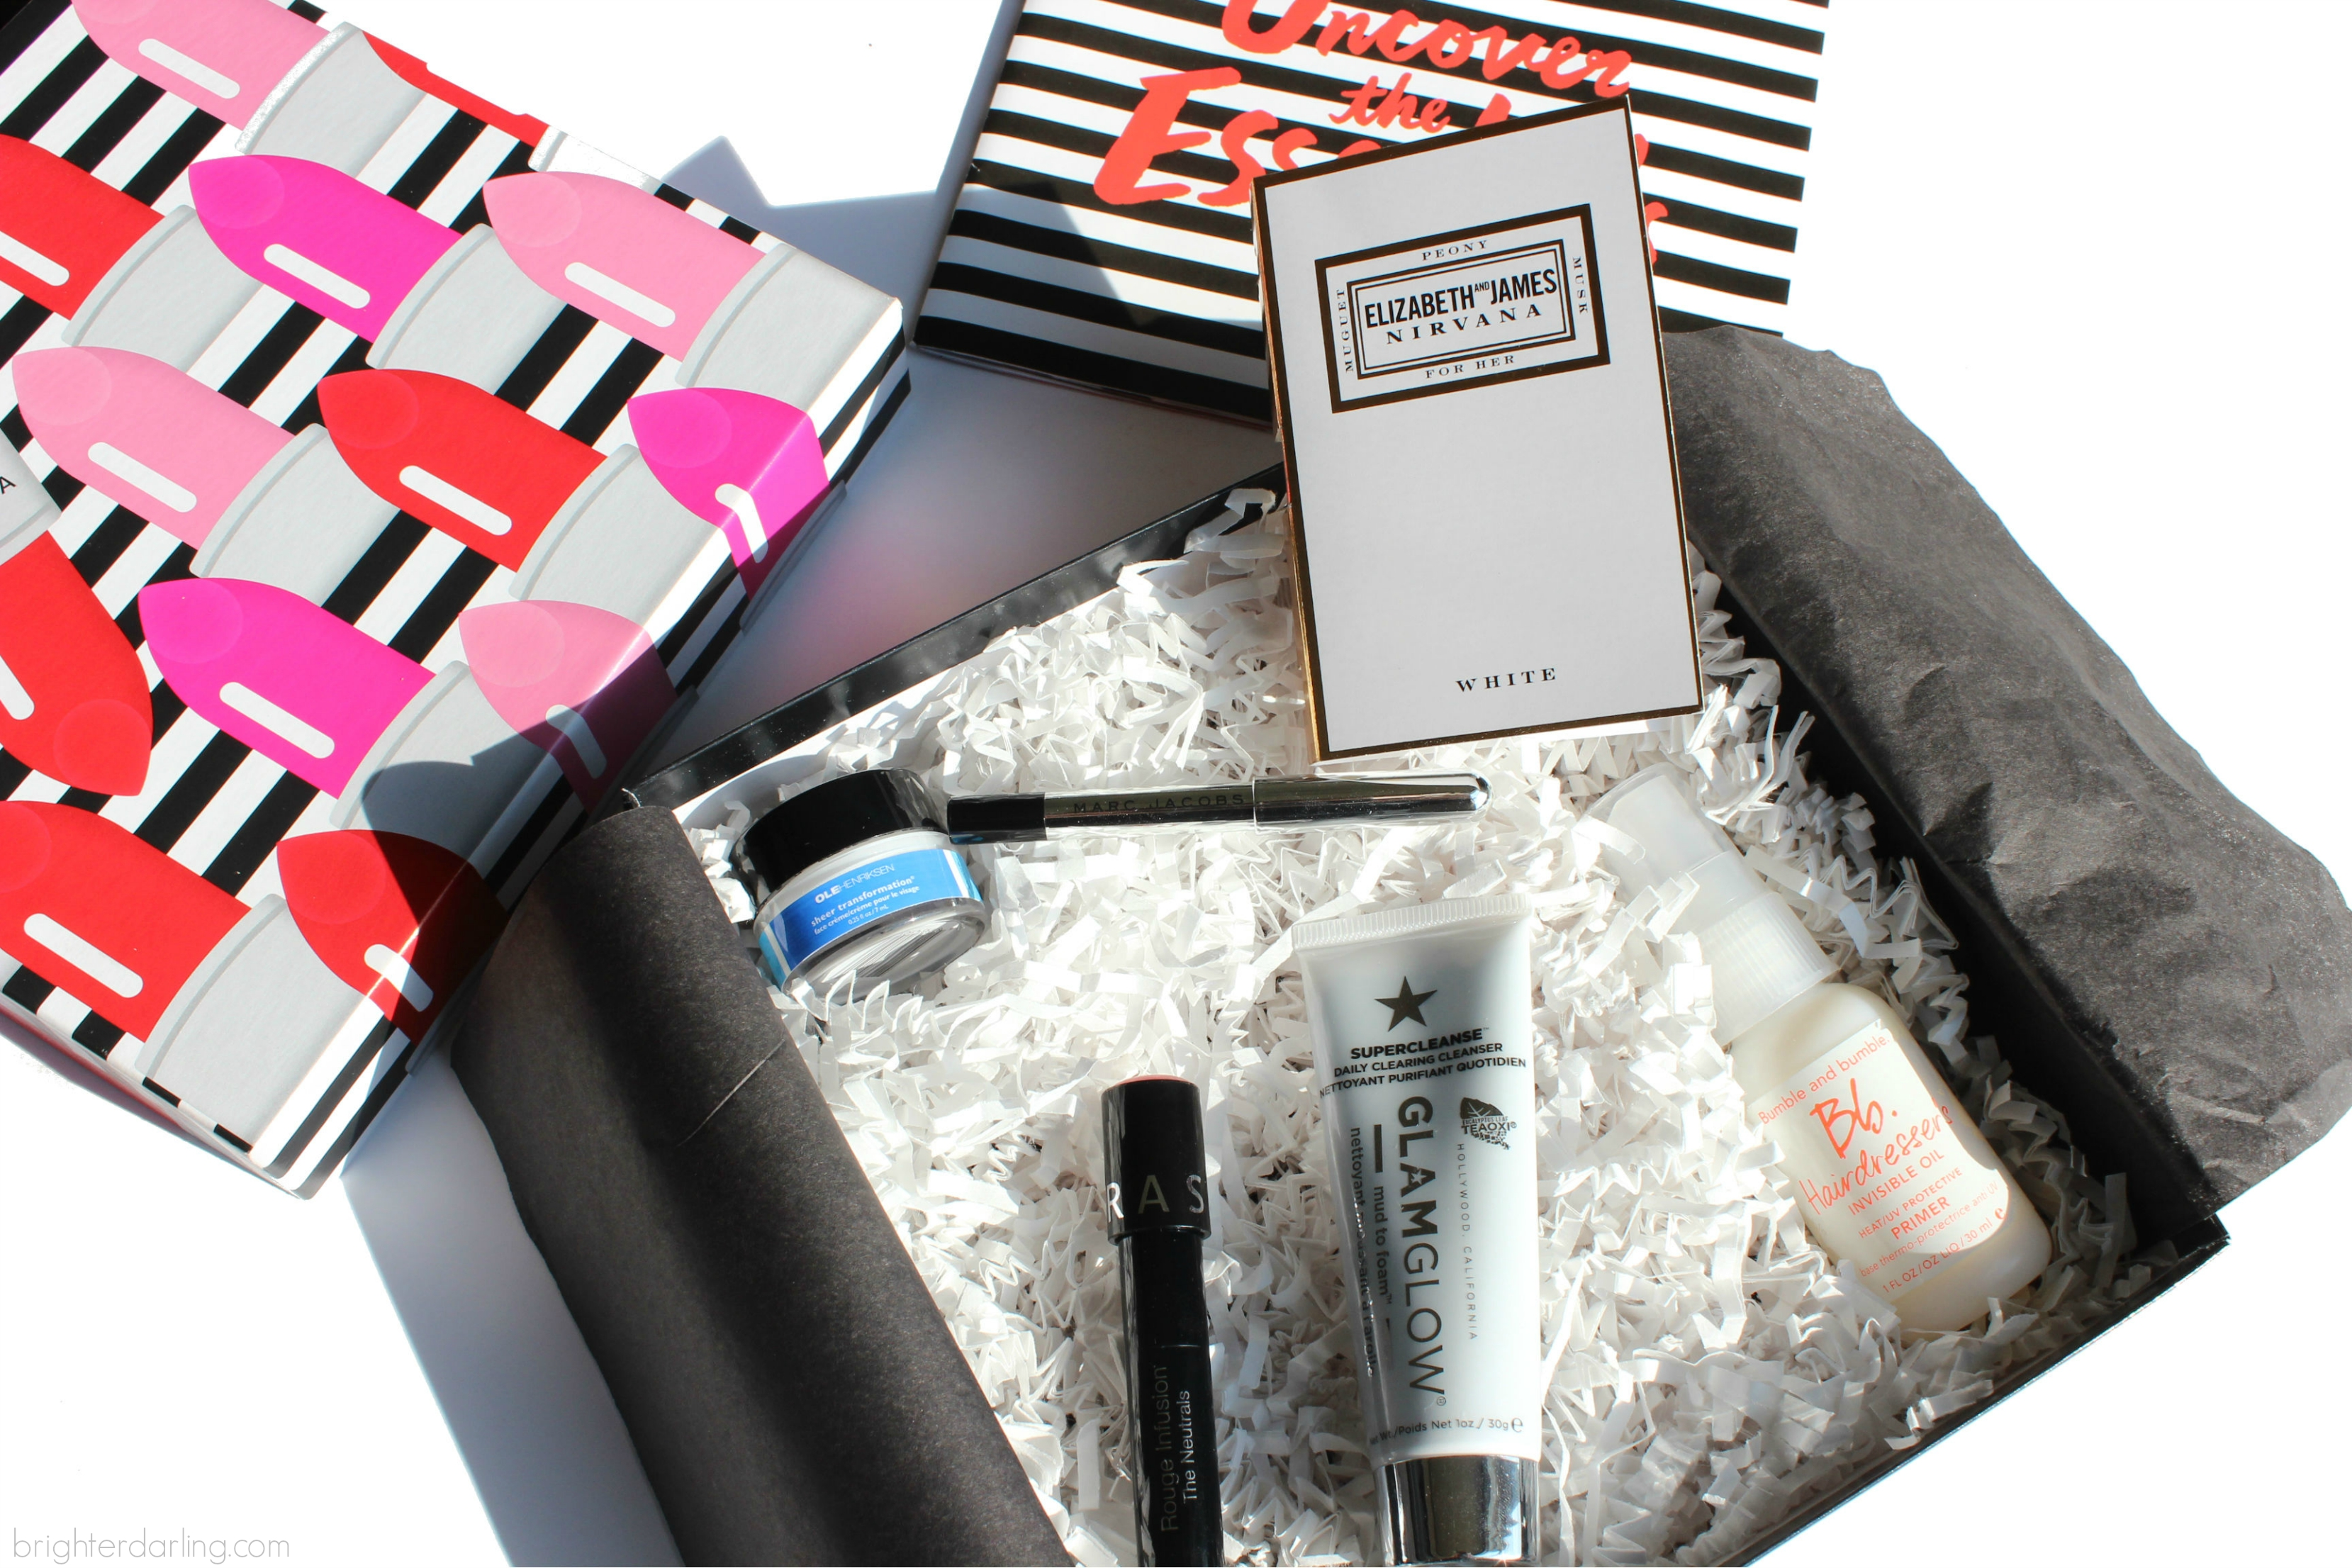 PLAY! by Sephora Review Unboxing Financial Analysis| Brighterdarling.com